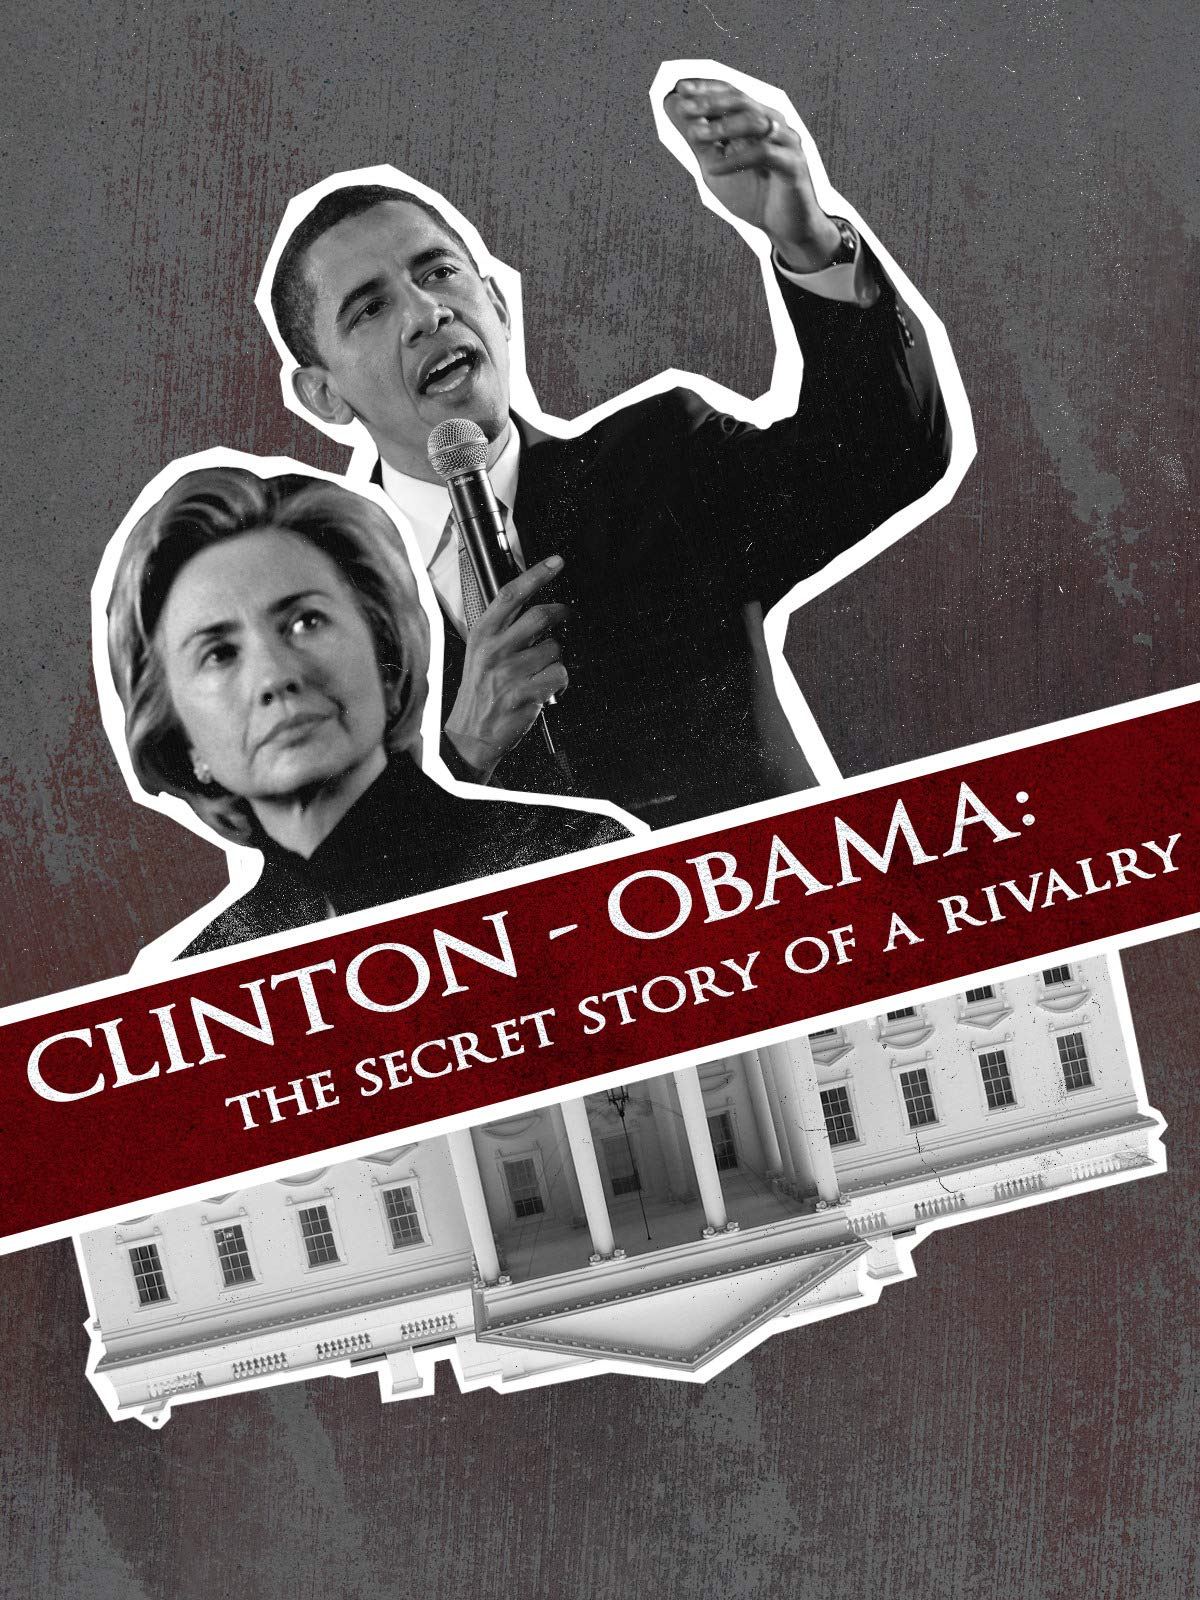 Clinton - Obama: The Secret Story of a Rivalry